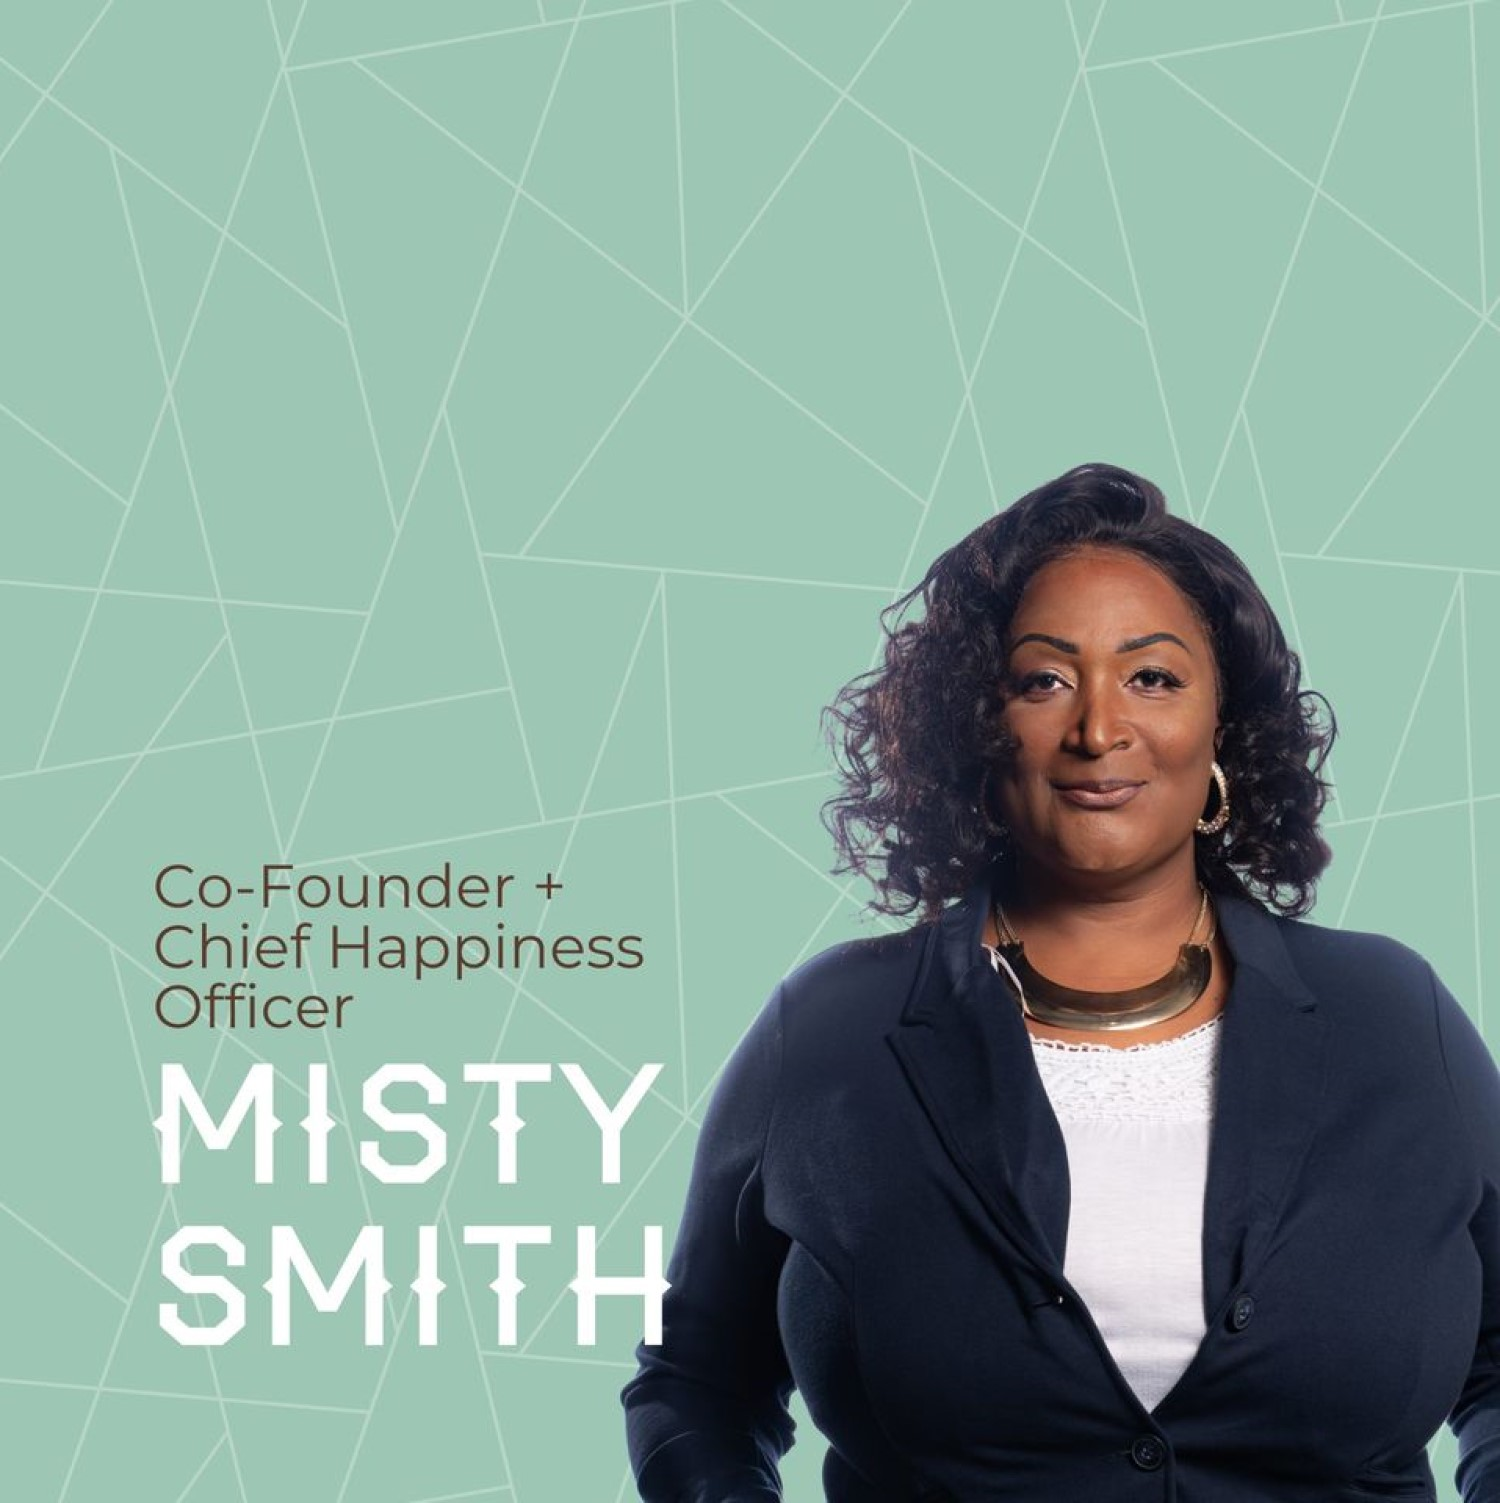 Misty Smith, CHO & Co-Founder of Bespoke Ventures and Investments, LLC DBA Bespoke Campgrounds